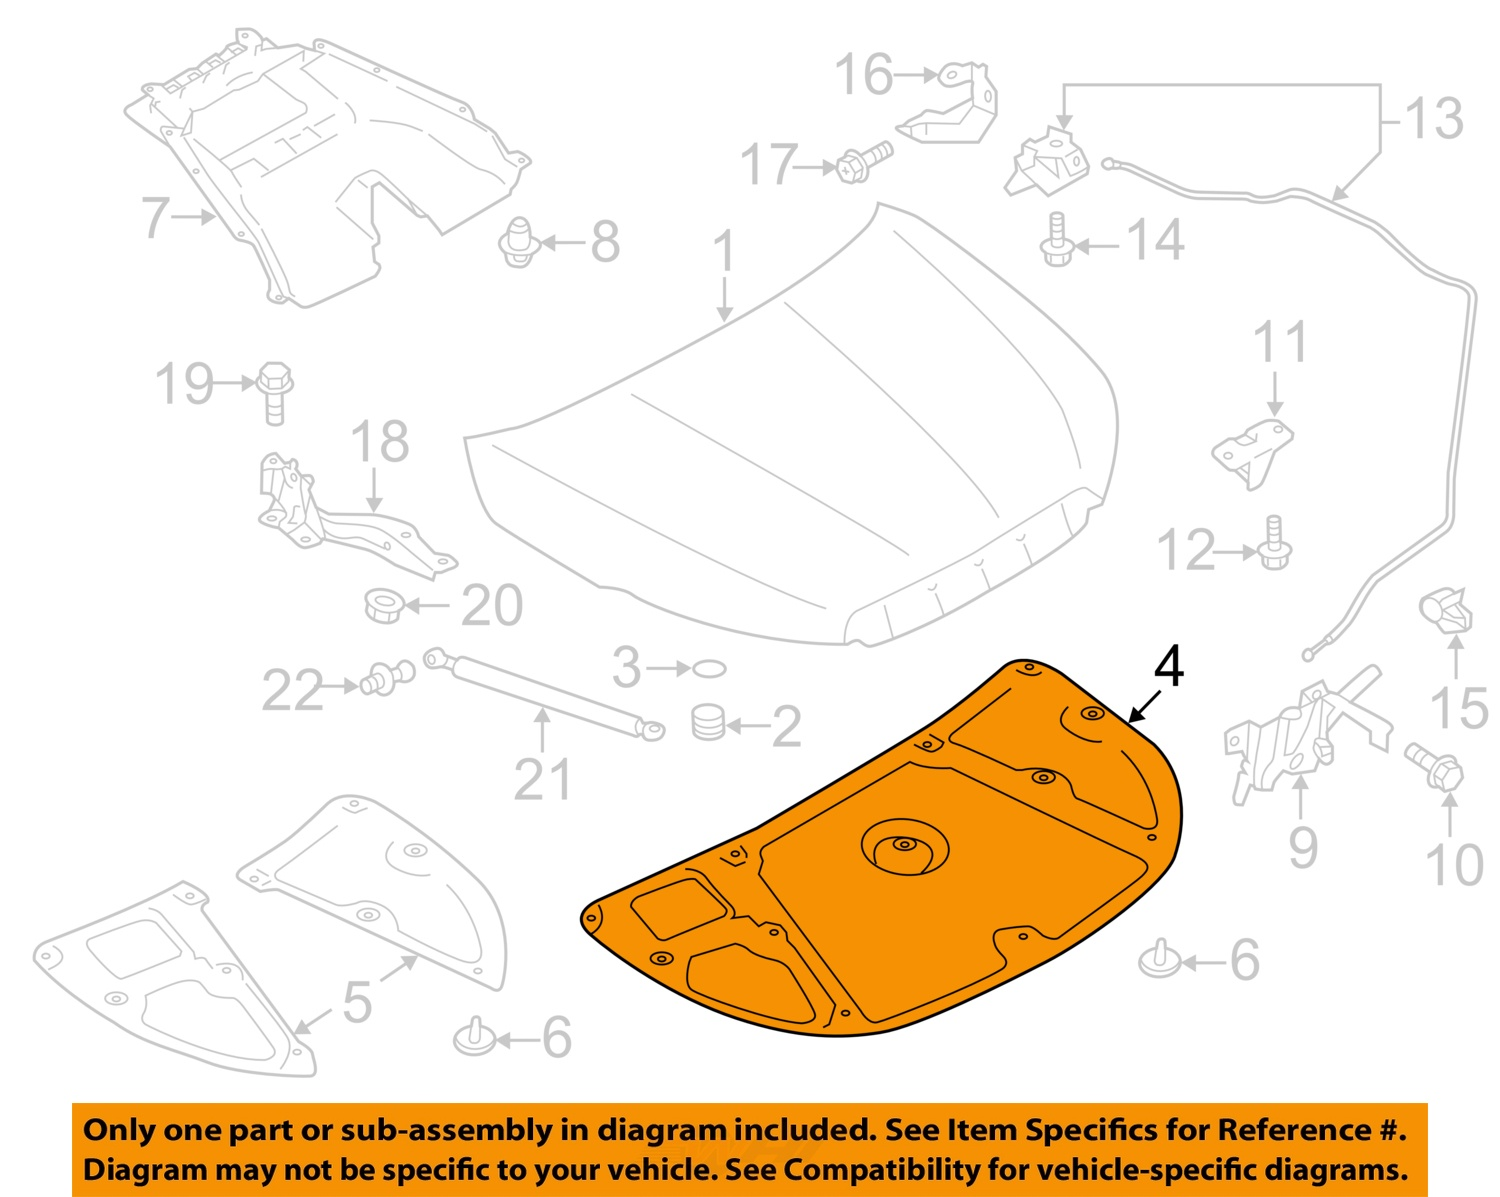 SUBARU OEM 14 16 Forester Hood Insulation Pad Liner Heat